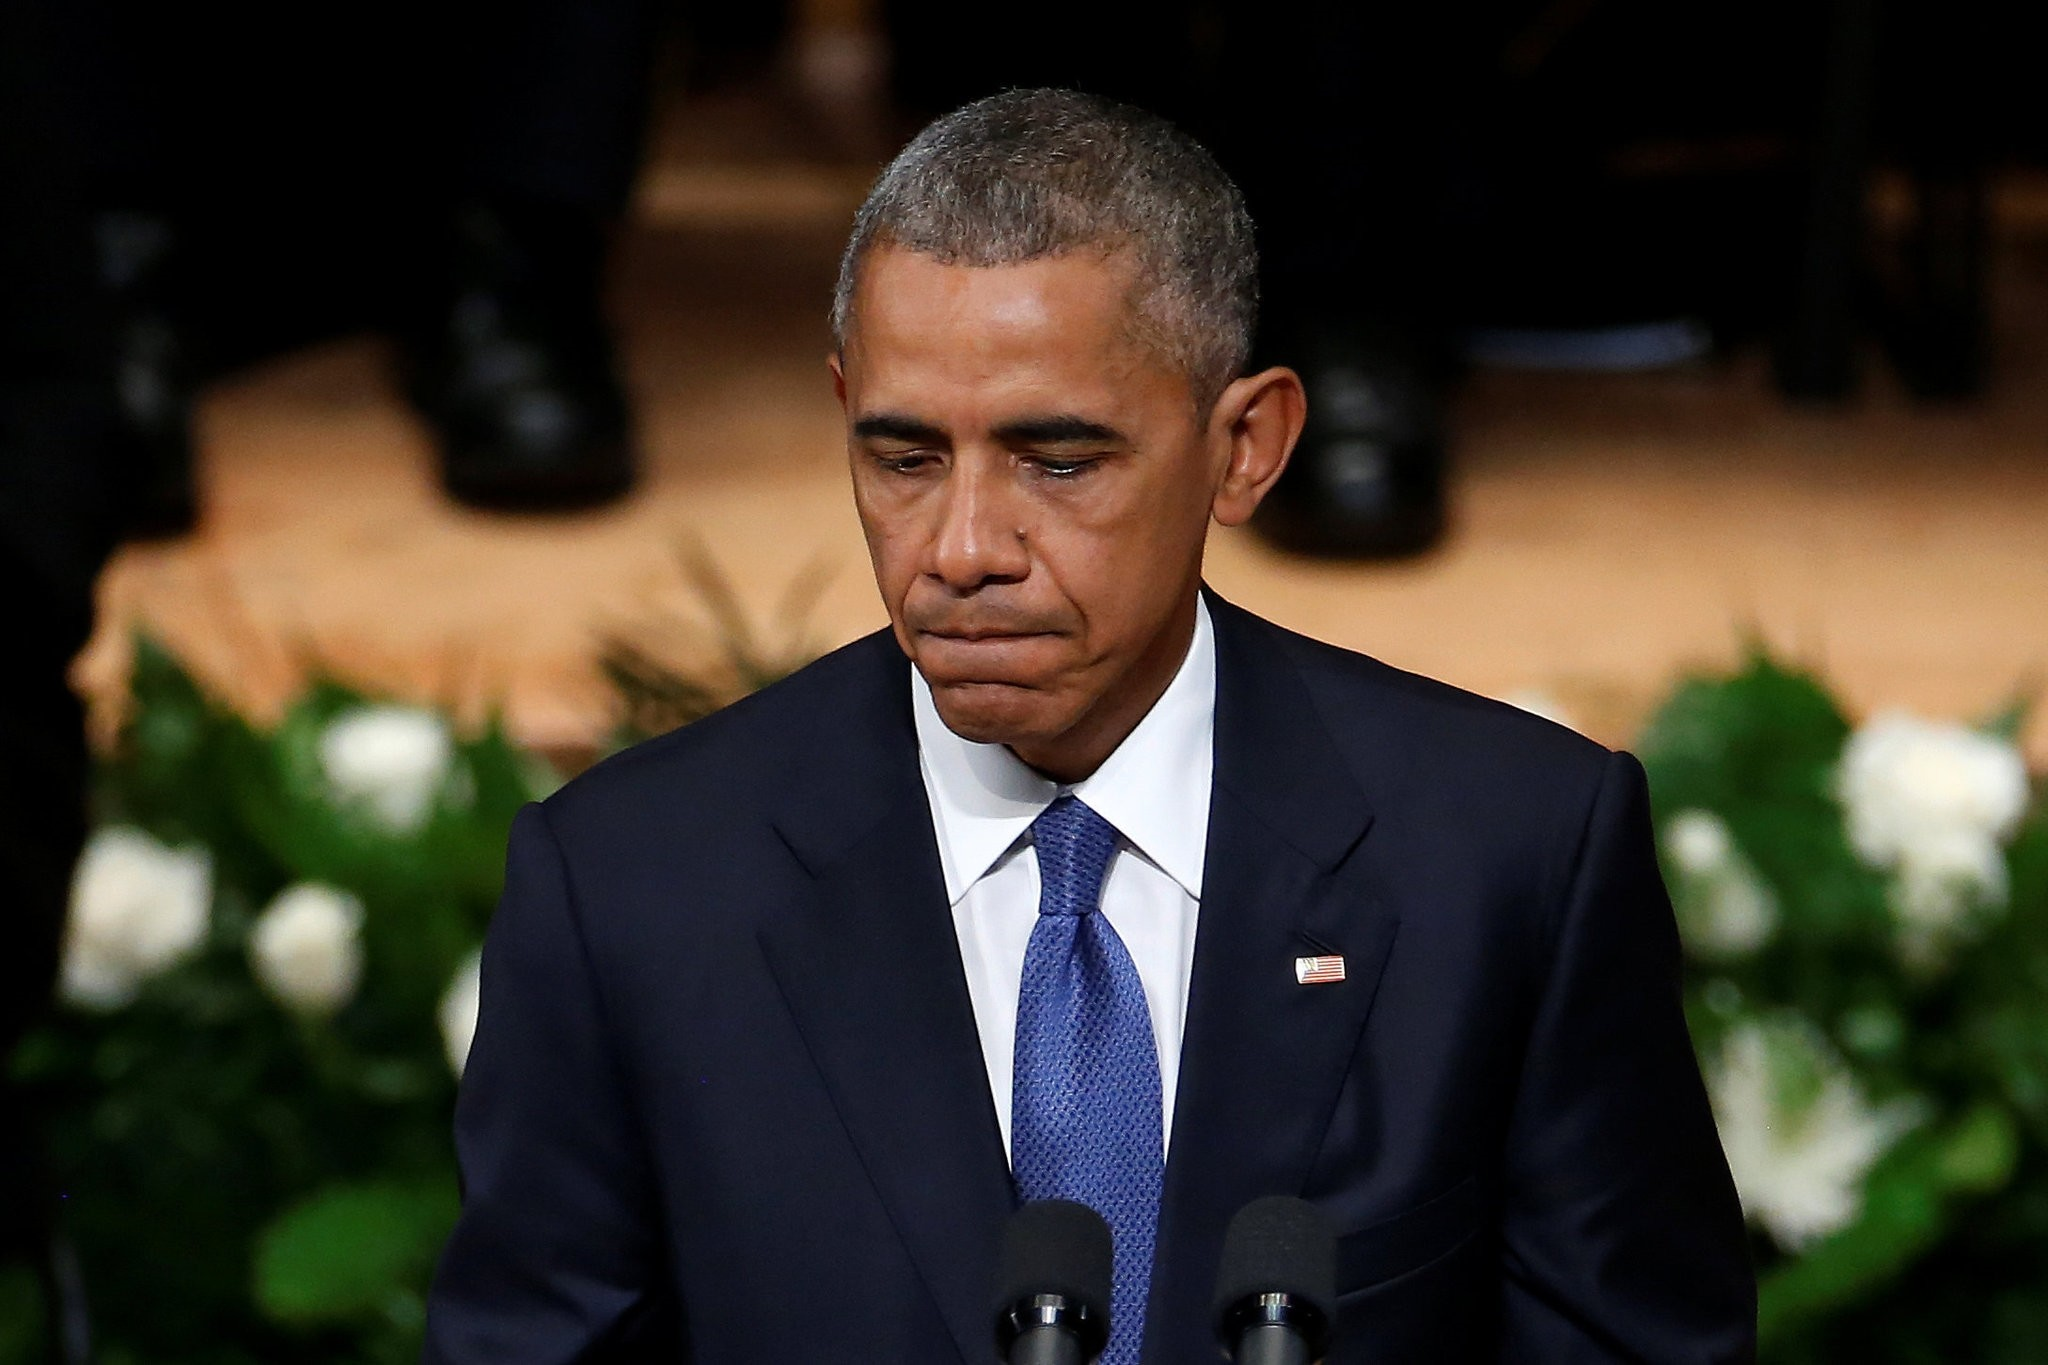 U.S. President Barack Obama speaks during a memorial service following the multiple police shootings in Dallas, Texas, U.S., July 12, 2016. (REUTERS Photo)